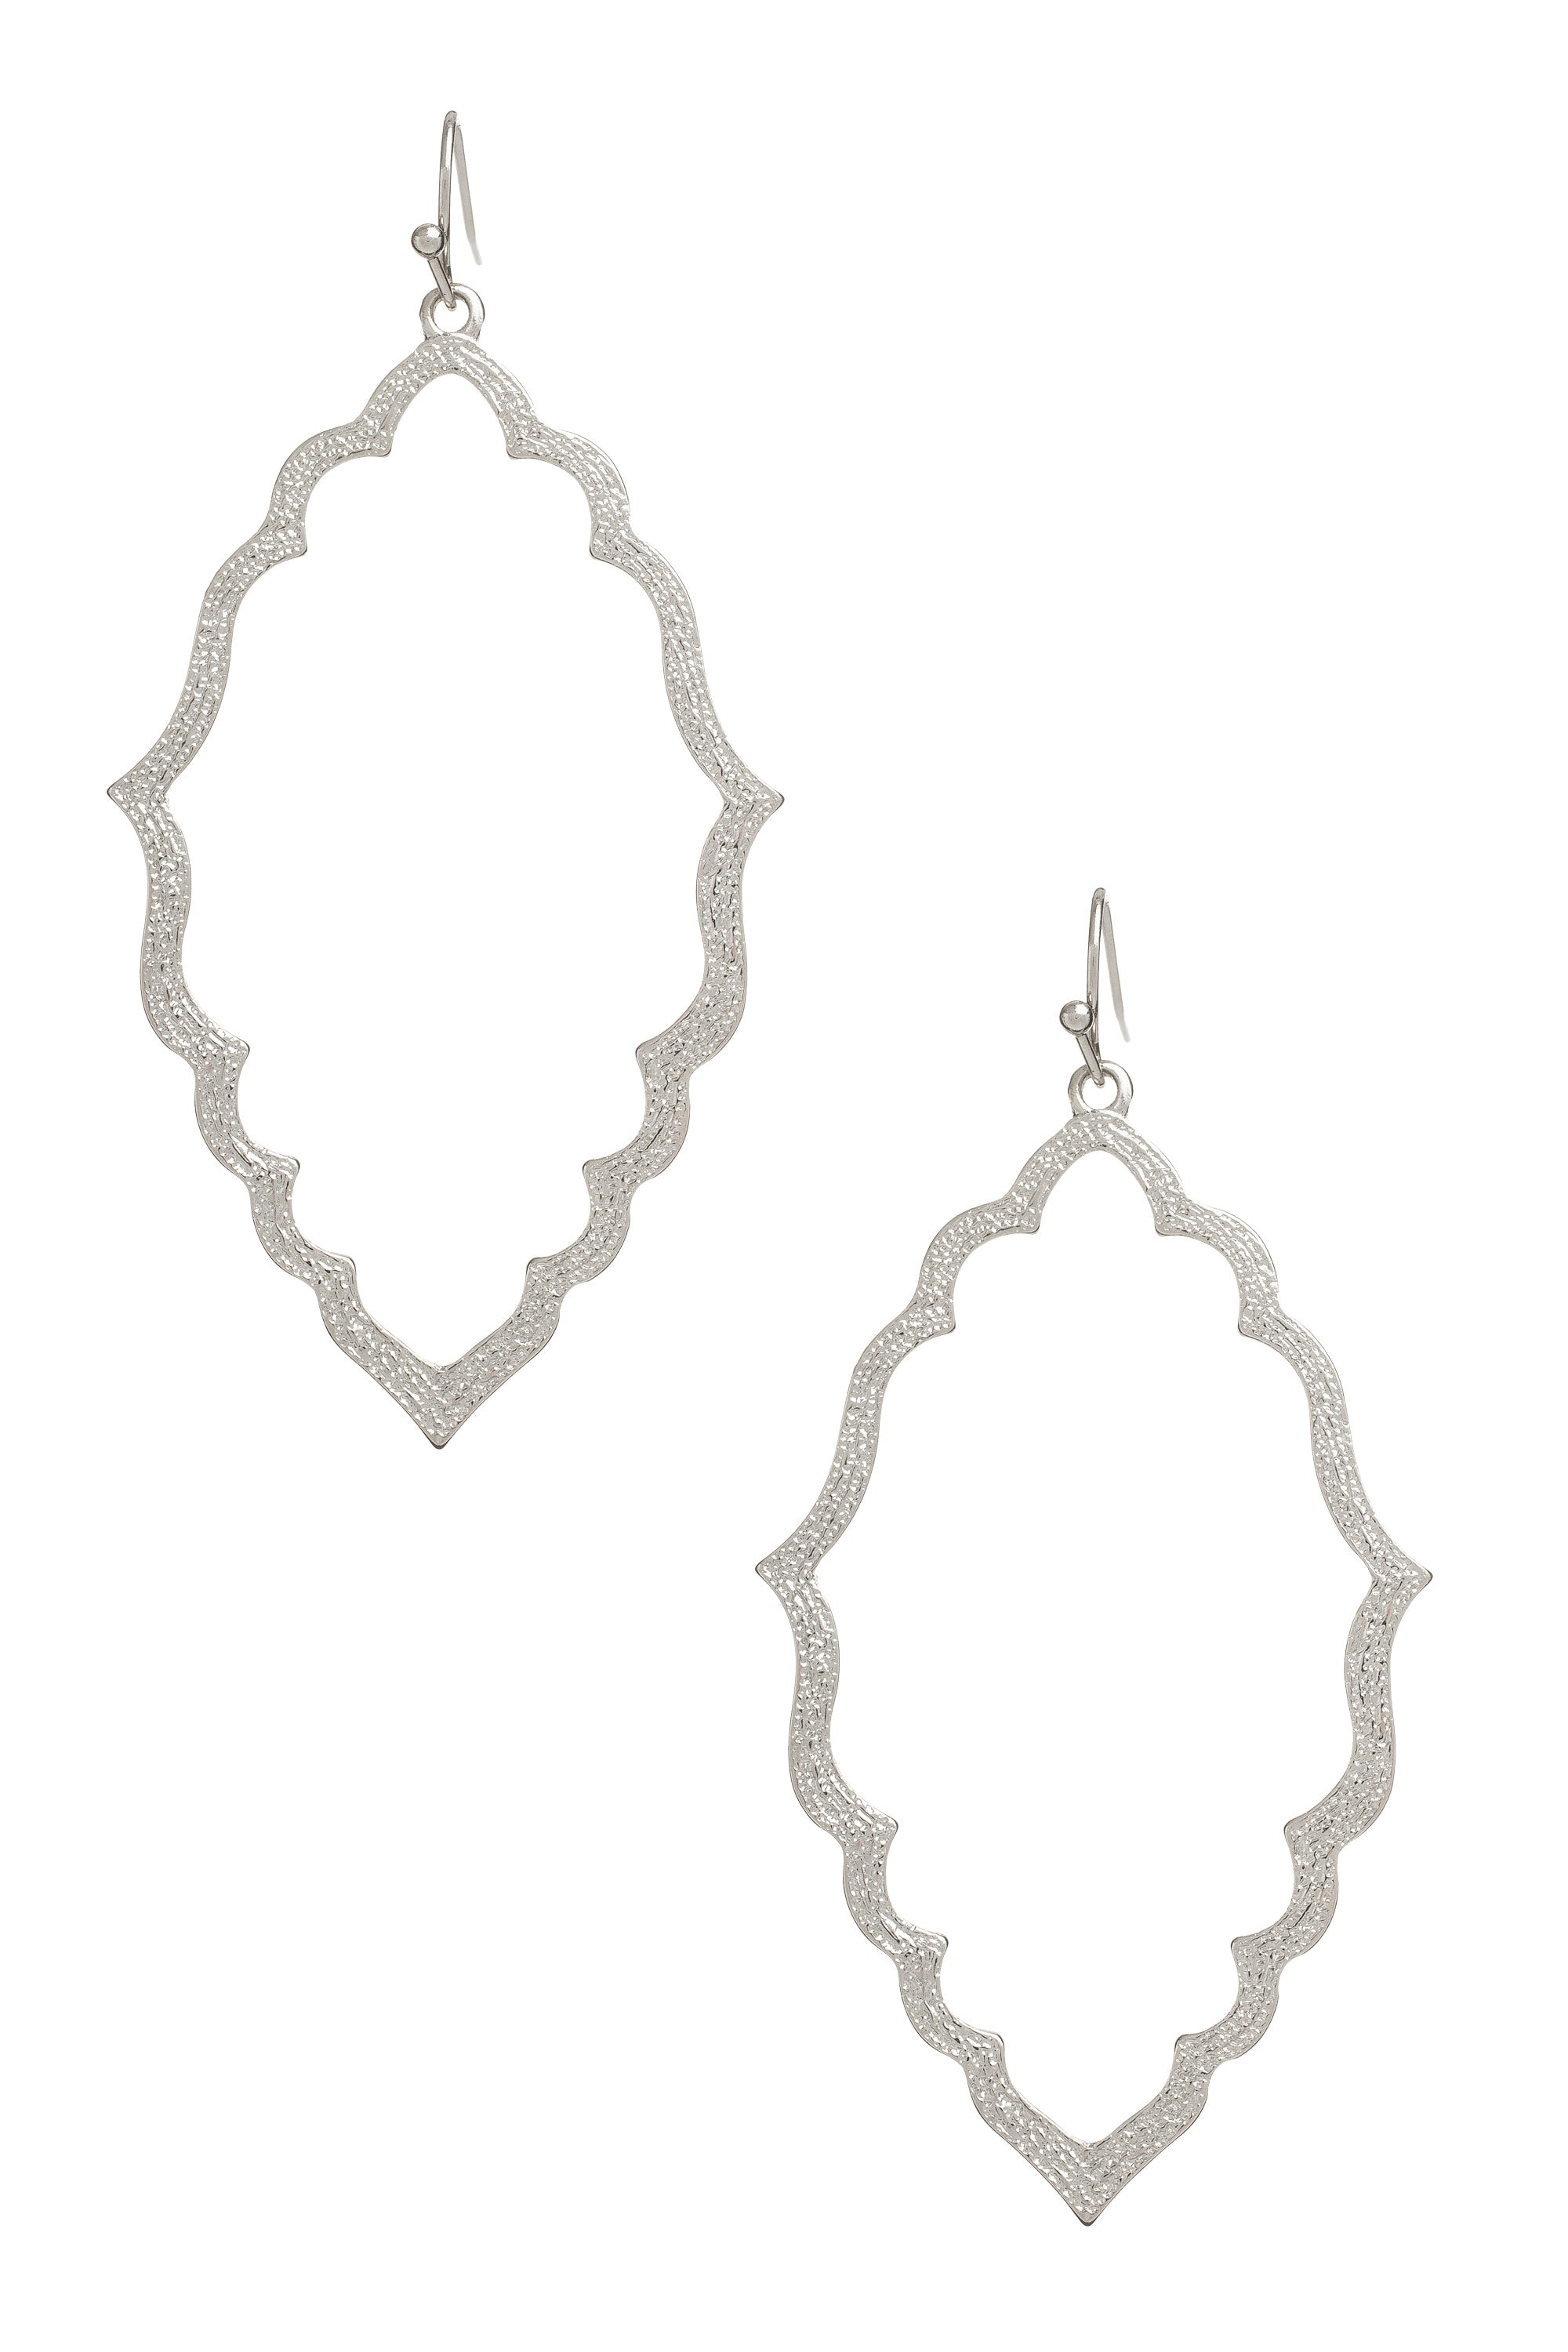 Type 2 Frame Earrings